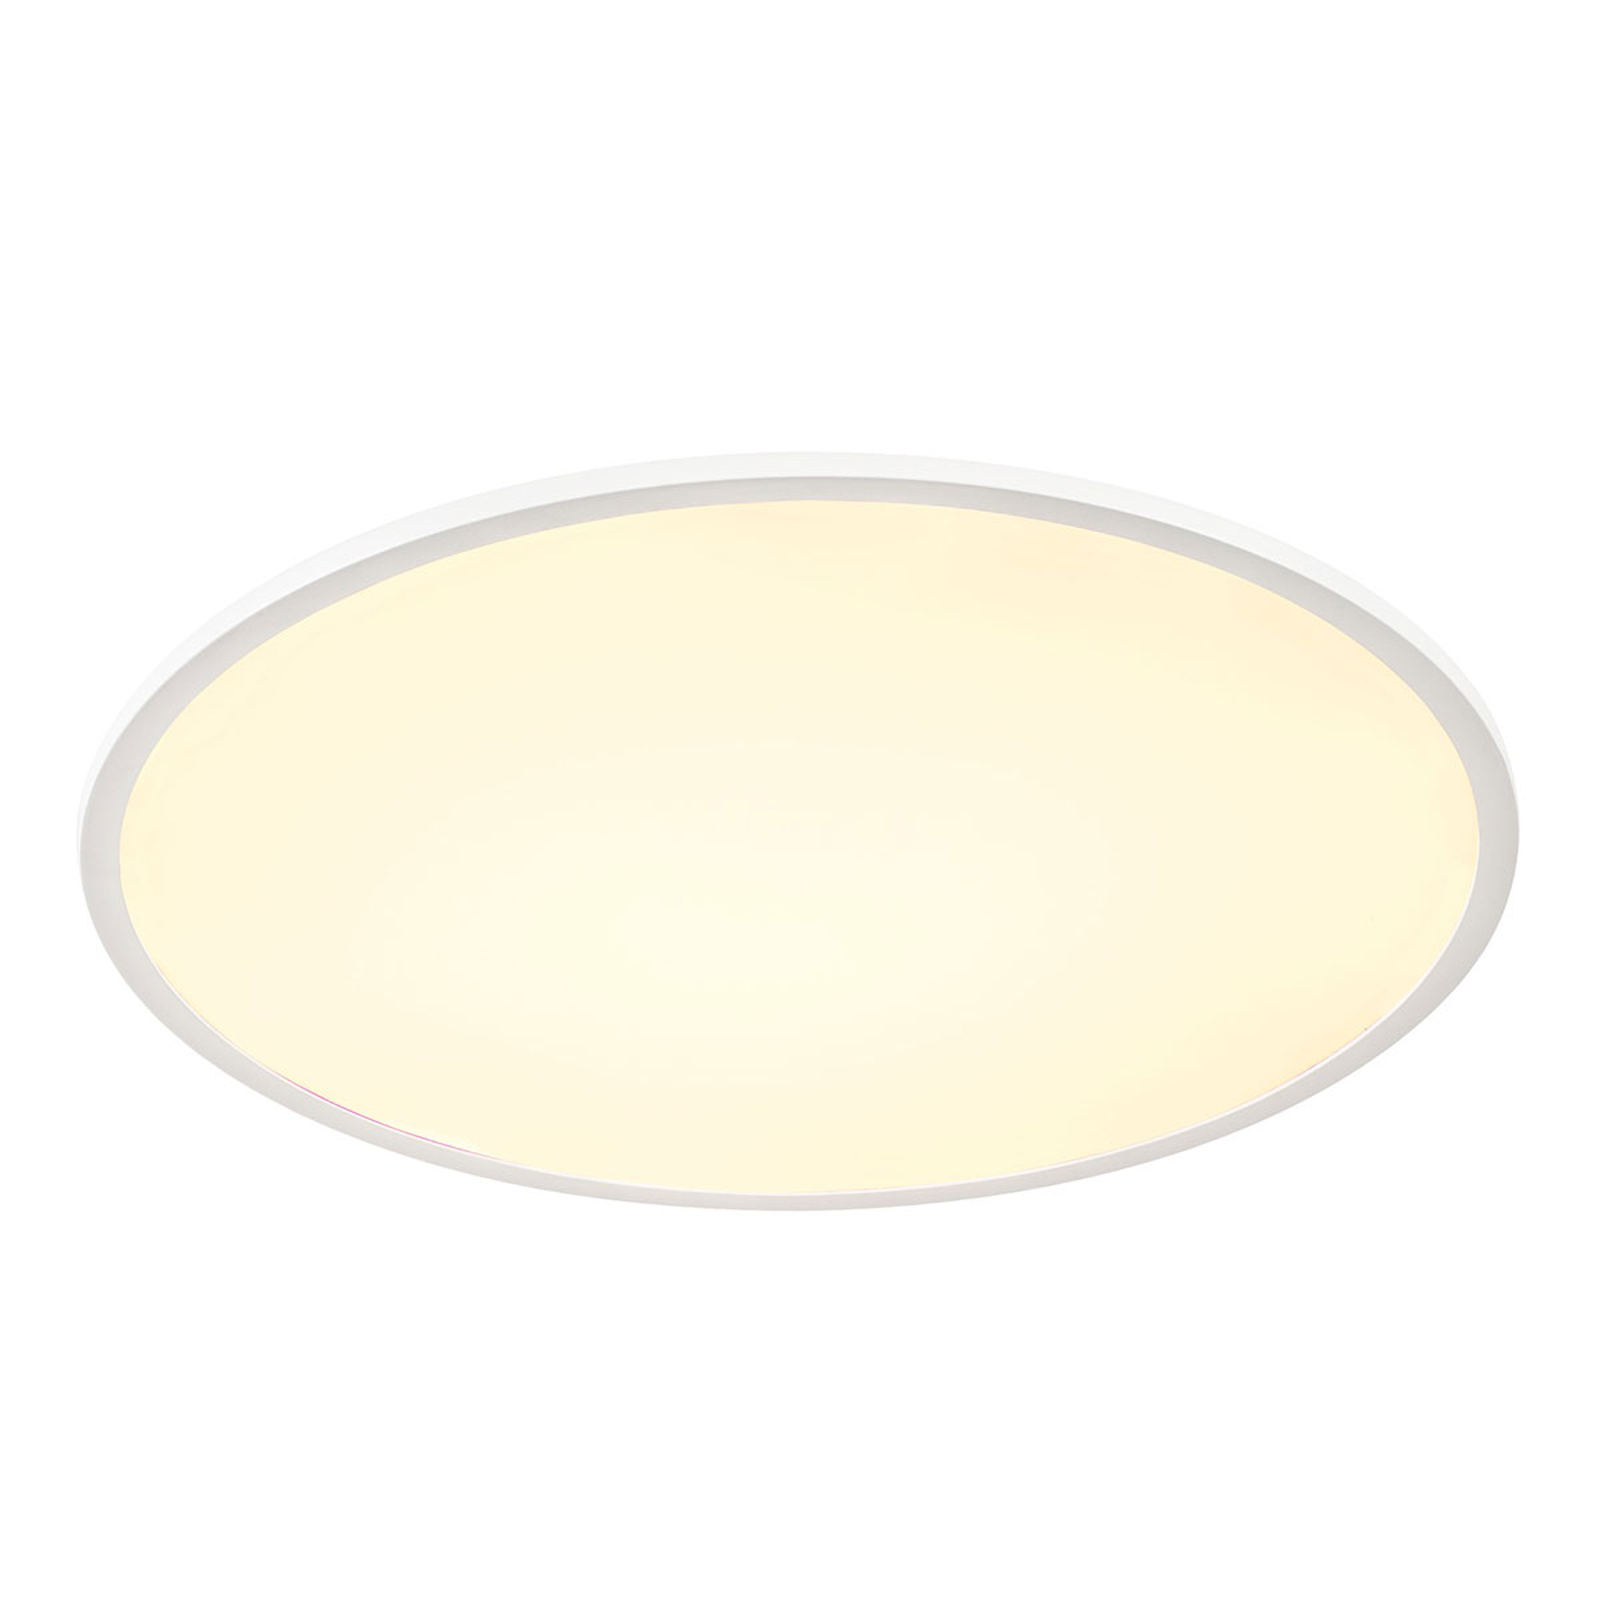 SLV Panel 60 LED-taklampe 3 000 K, hvit